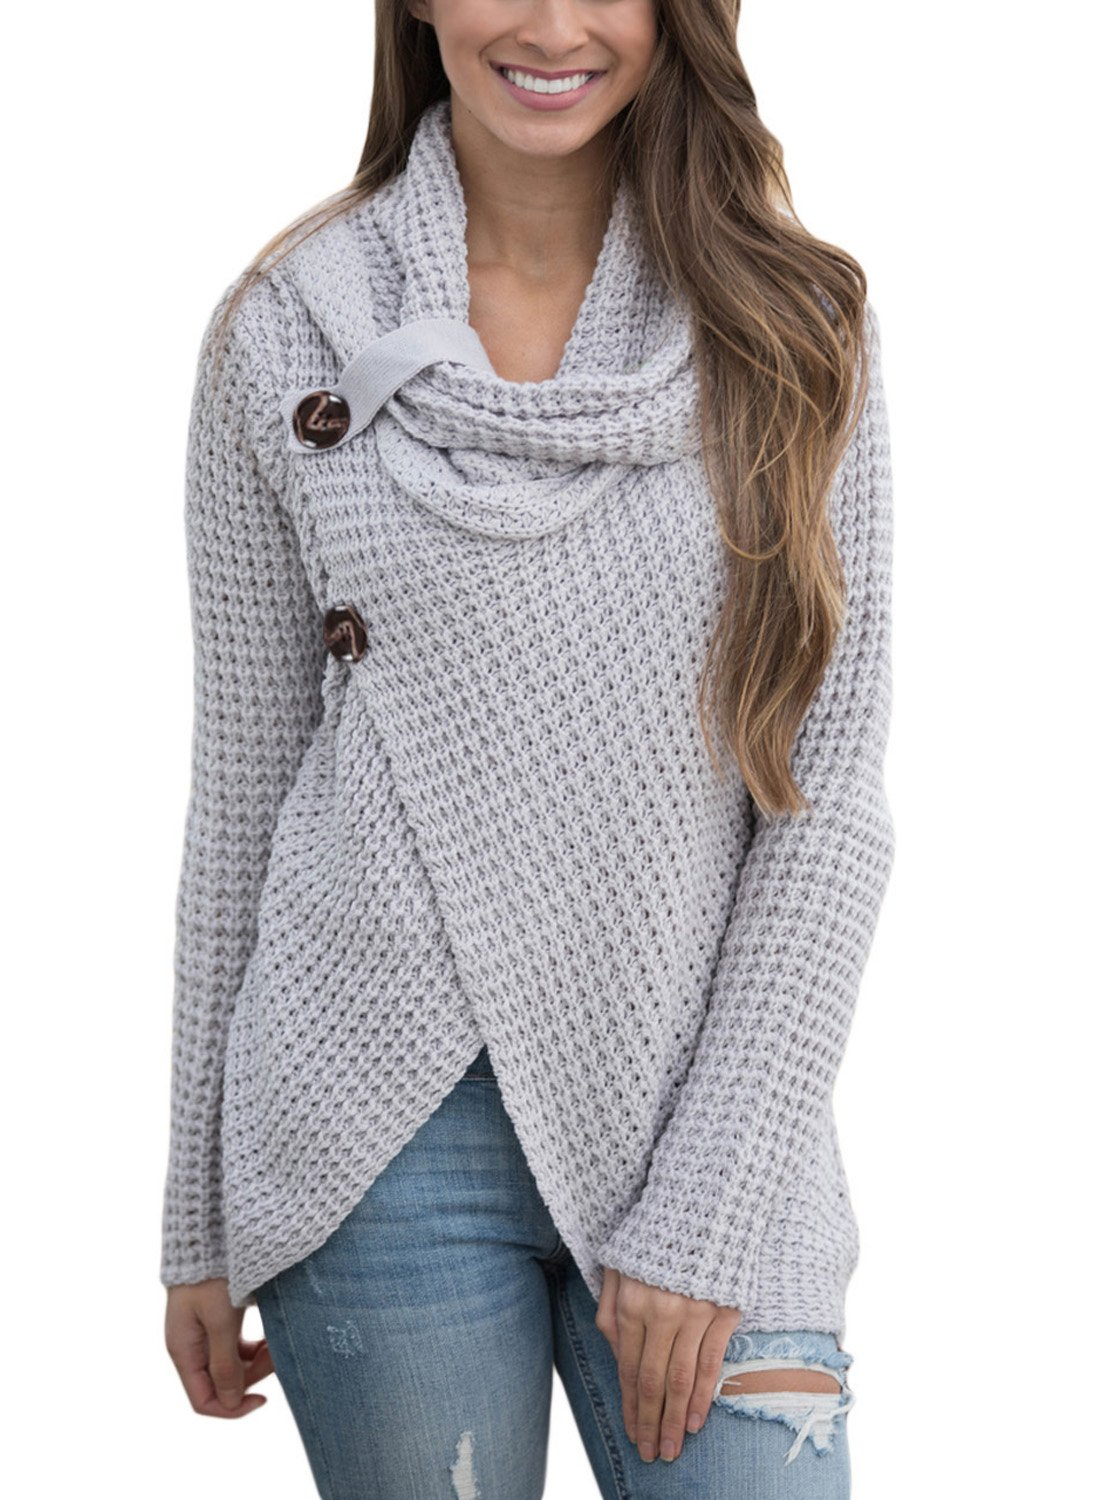 FIYOTE Women Casual Long Sleeve Turtleneck Solid Knit Pullover Sweater X-Large Size Grey